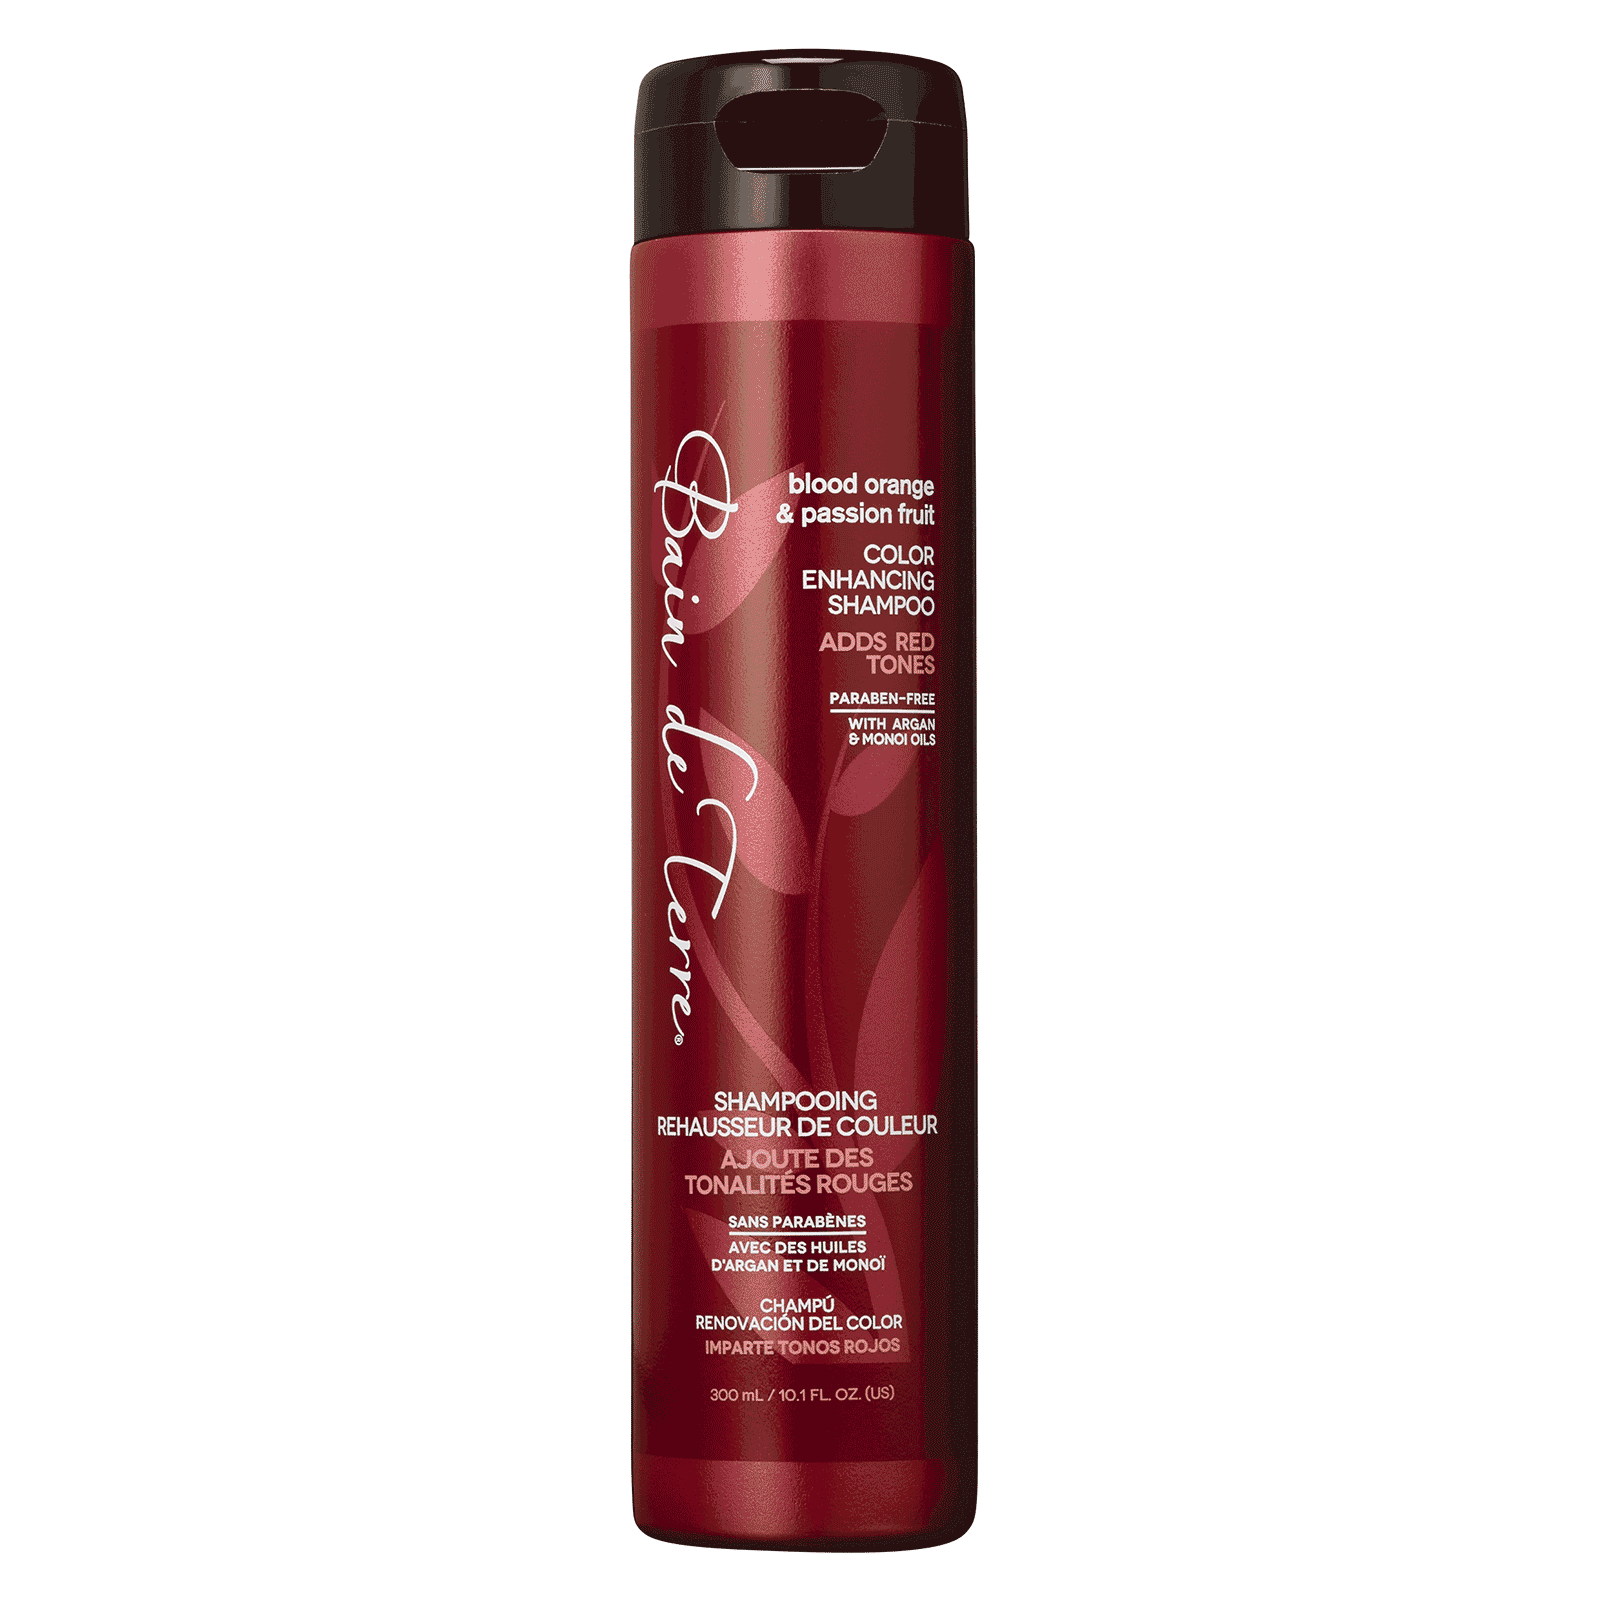 Blood Orange and Passion Fruit Color Enhancing Shampoo